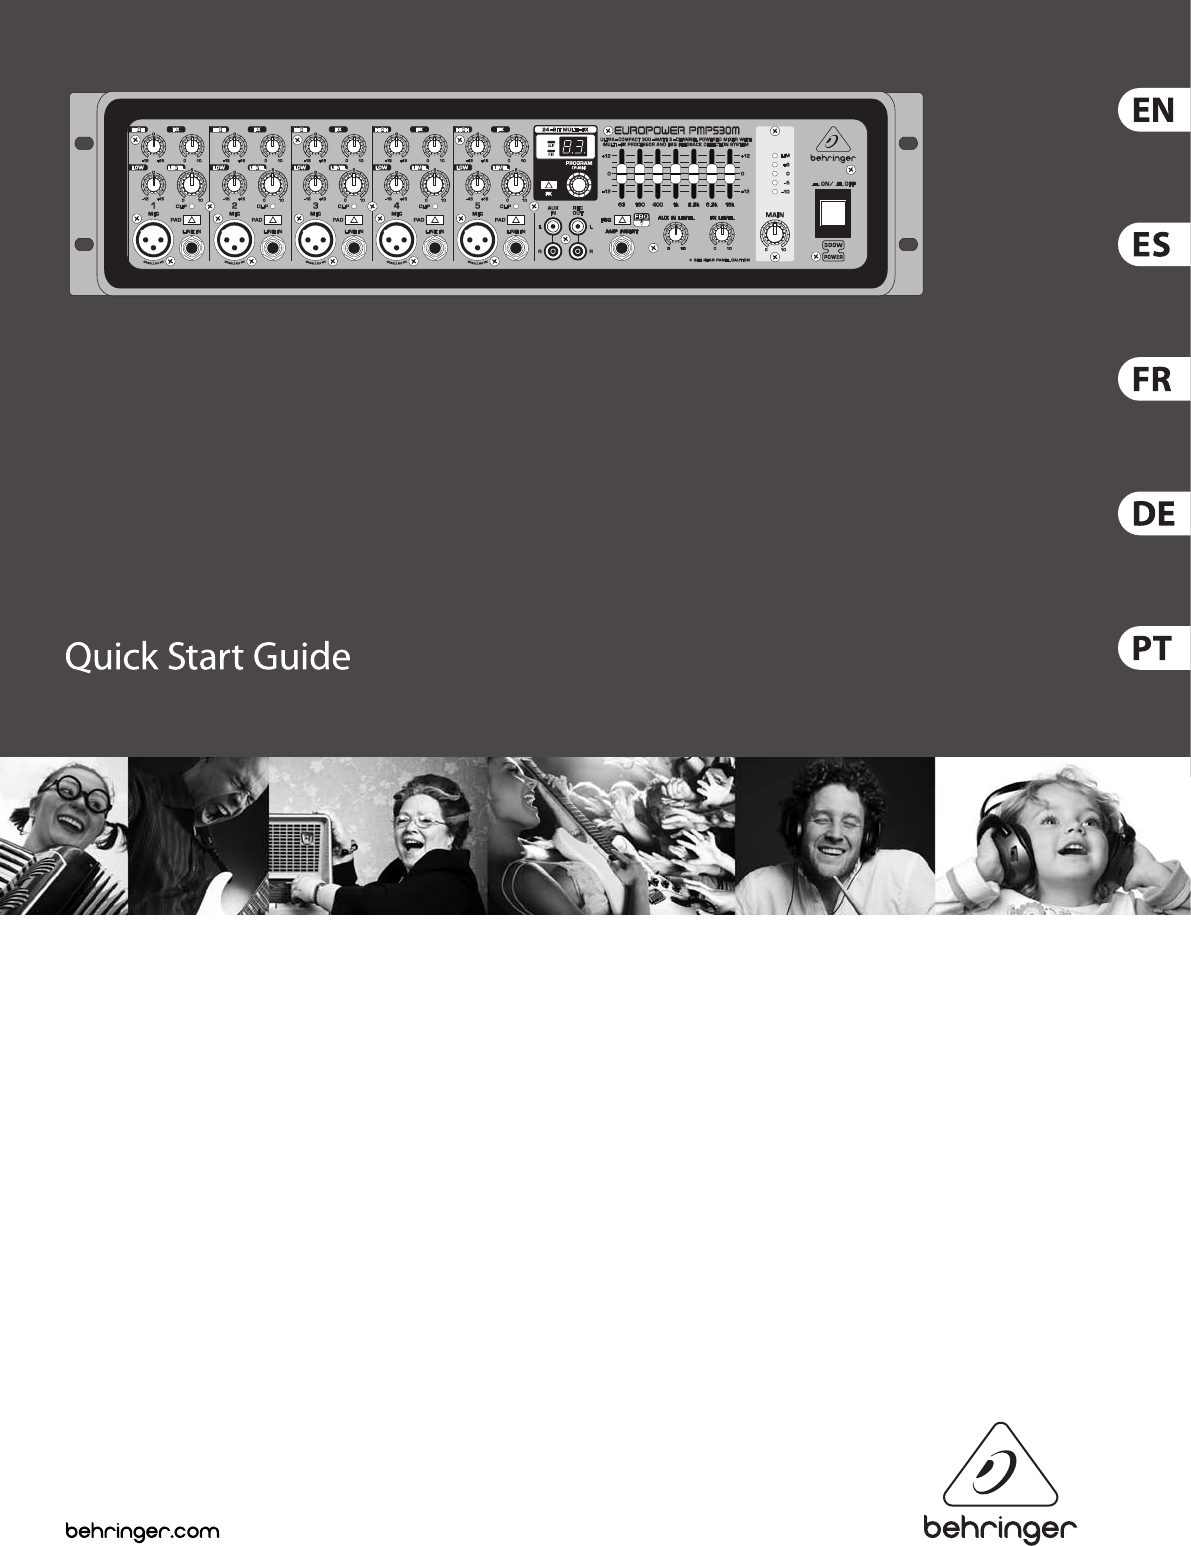 Behringer Music Mixer Pmp530m User Guide Manualsonlinecom Yamaha Lx210 Wiring Diagram Manual